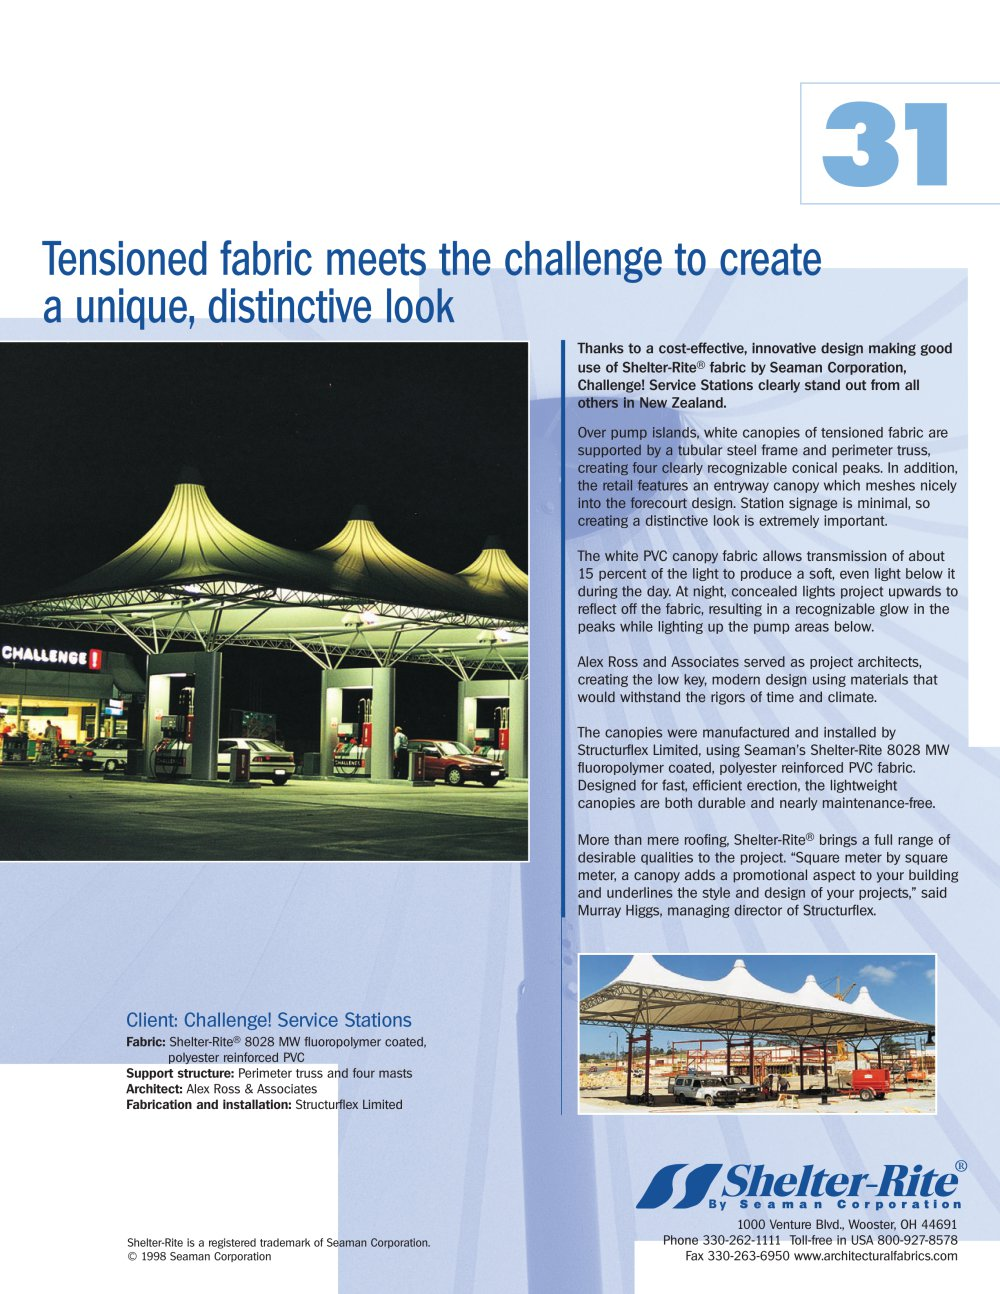 Tensioned fabric meets the challenge to create a unique, distinctive